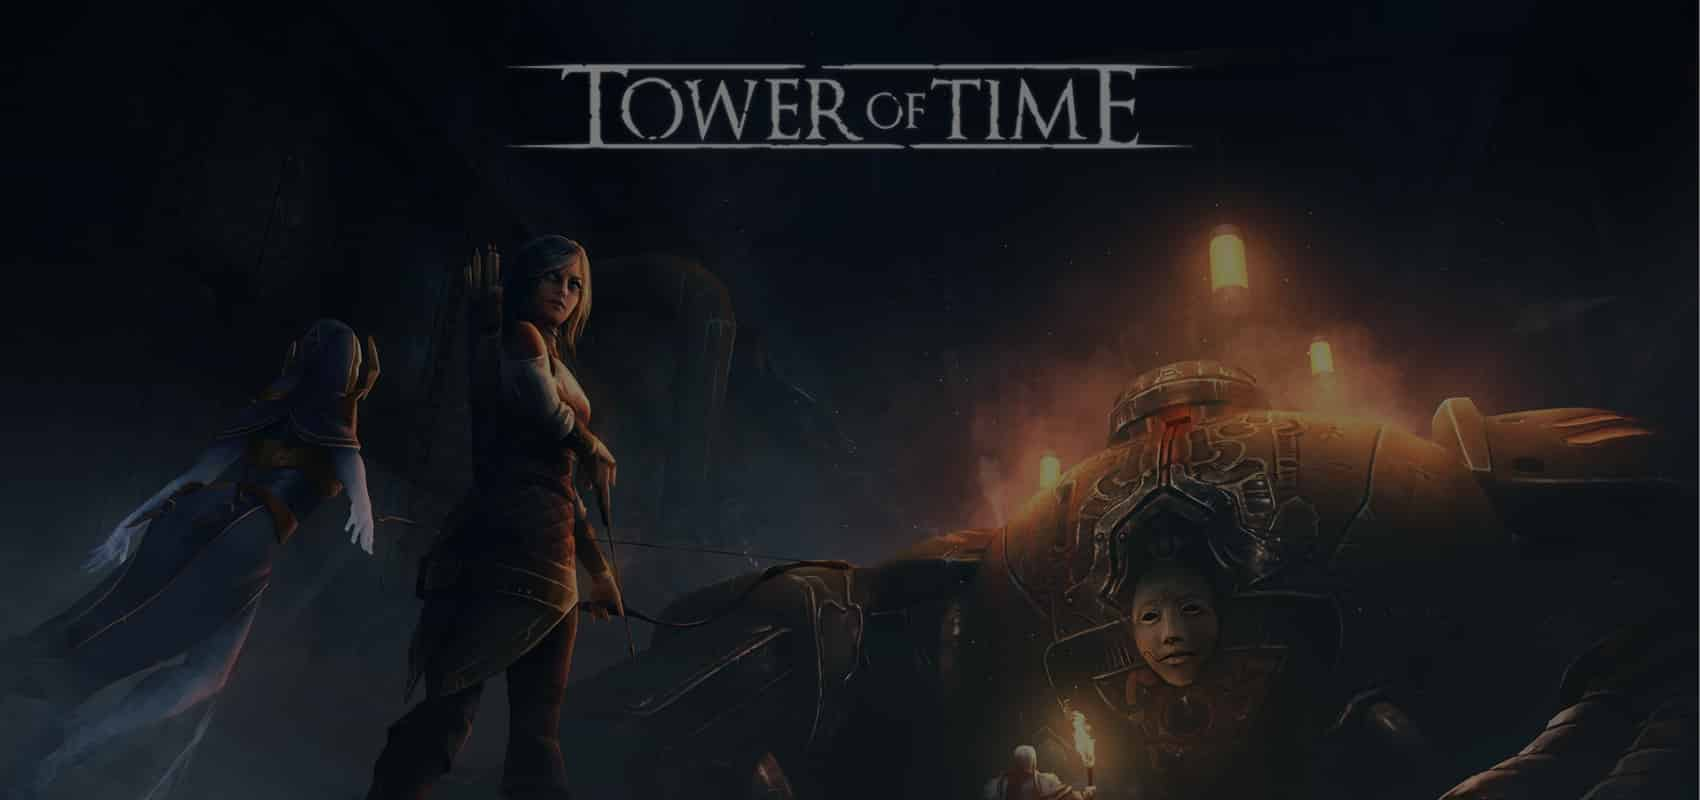 Epic CRPG Tower of Time unleashes its largest-ever free content drop